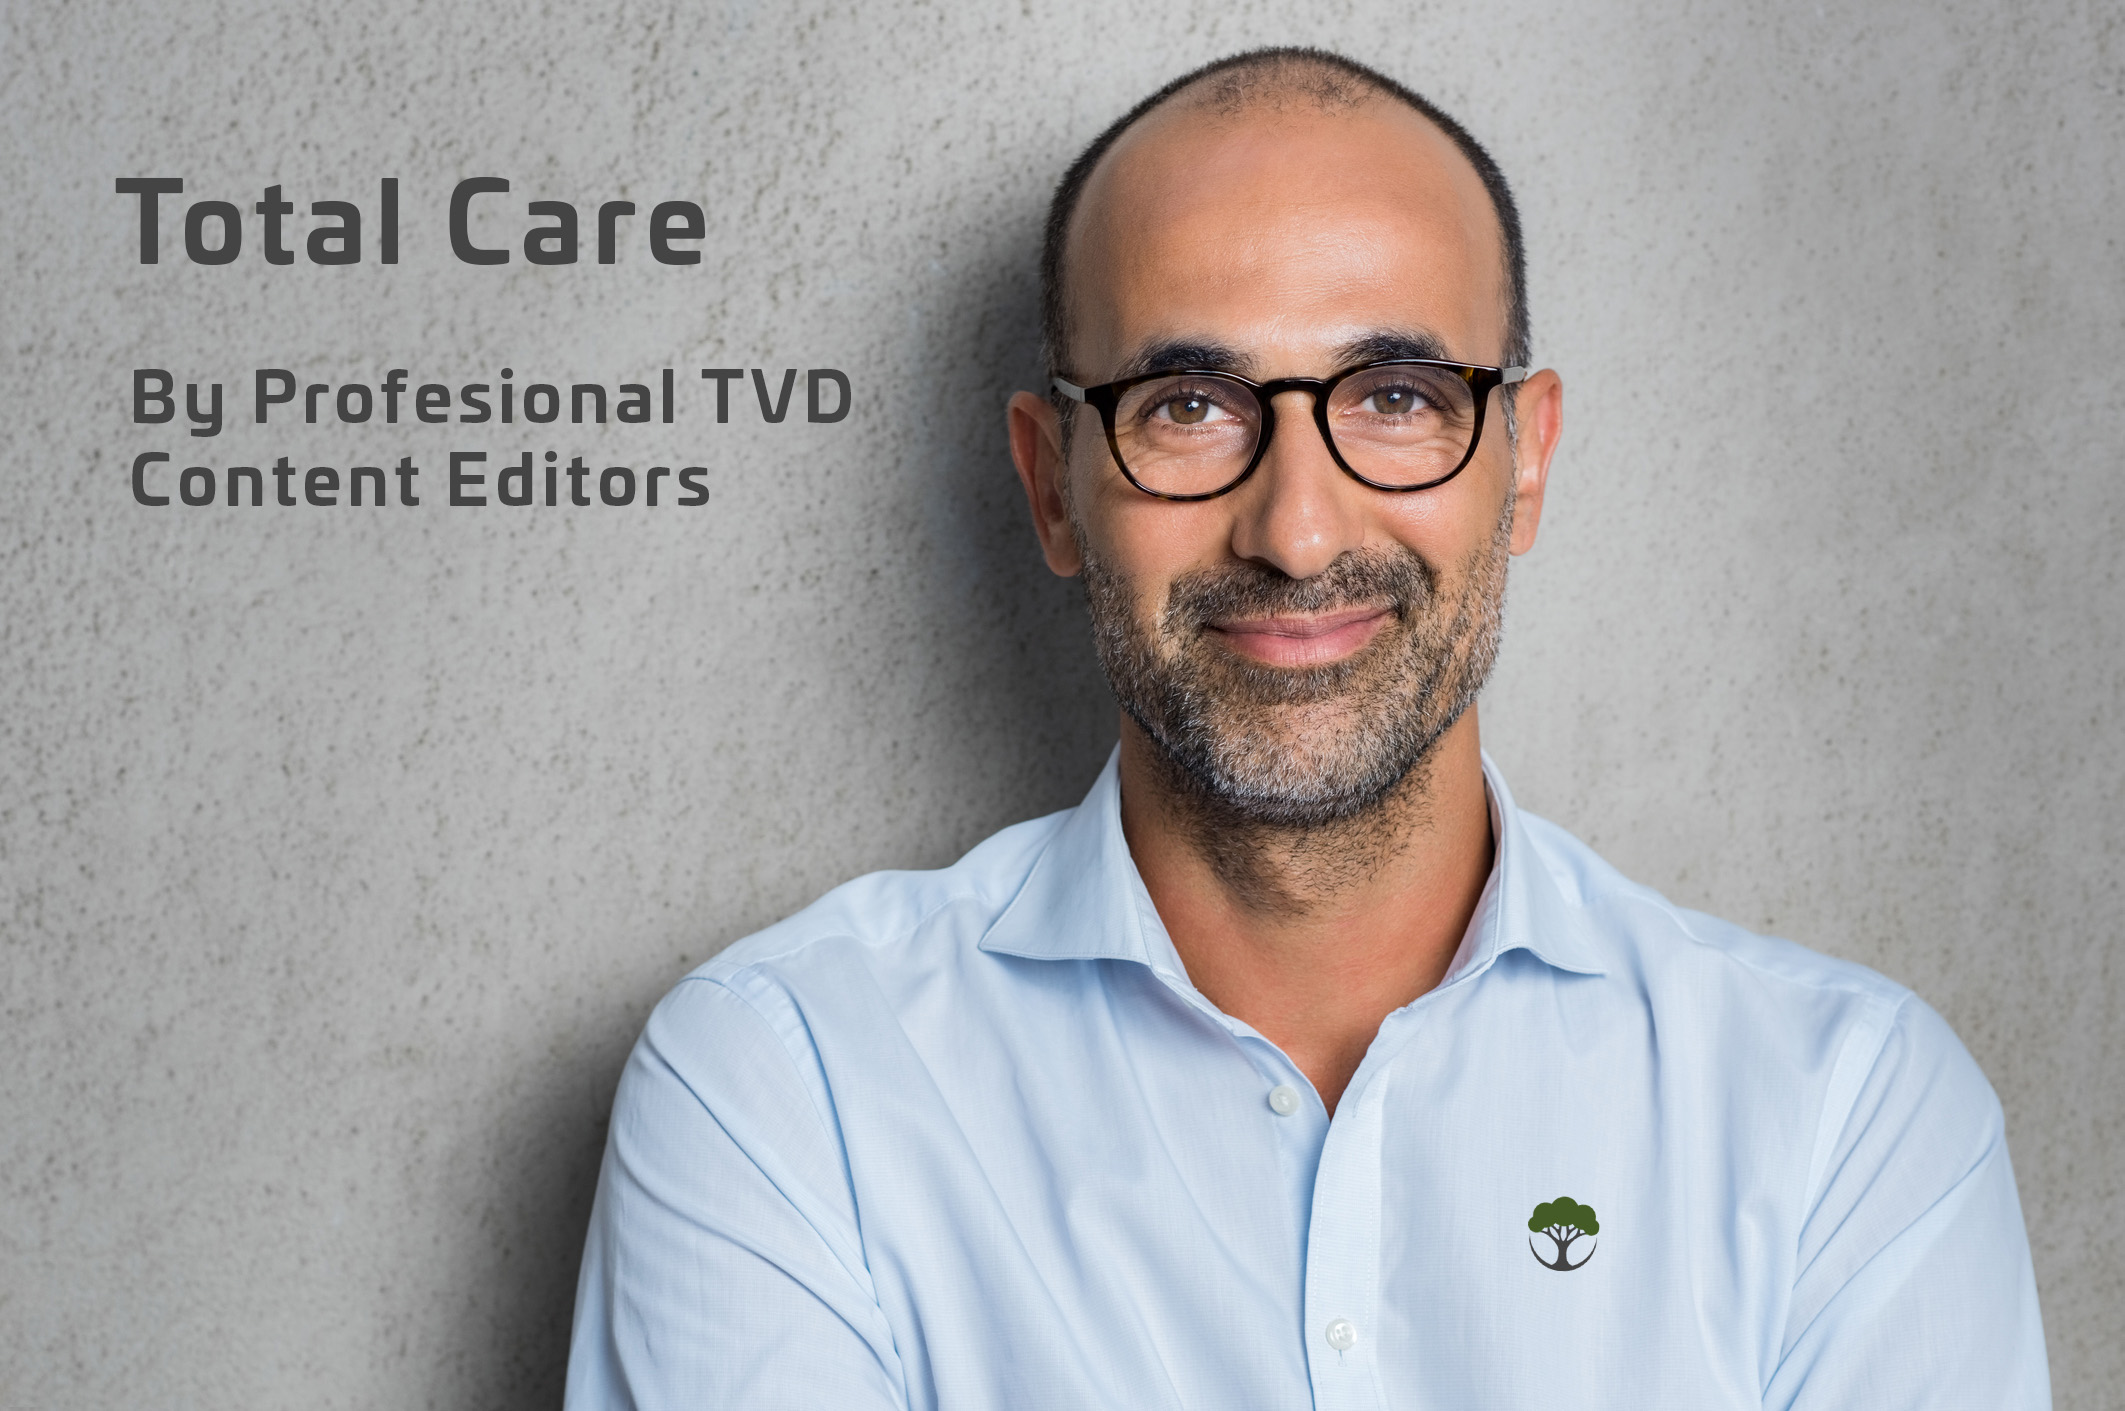 Image of tvd content editor